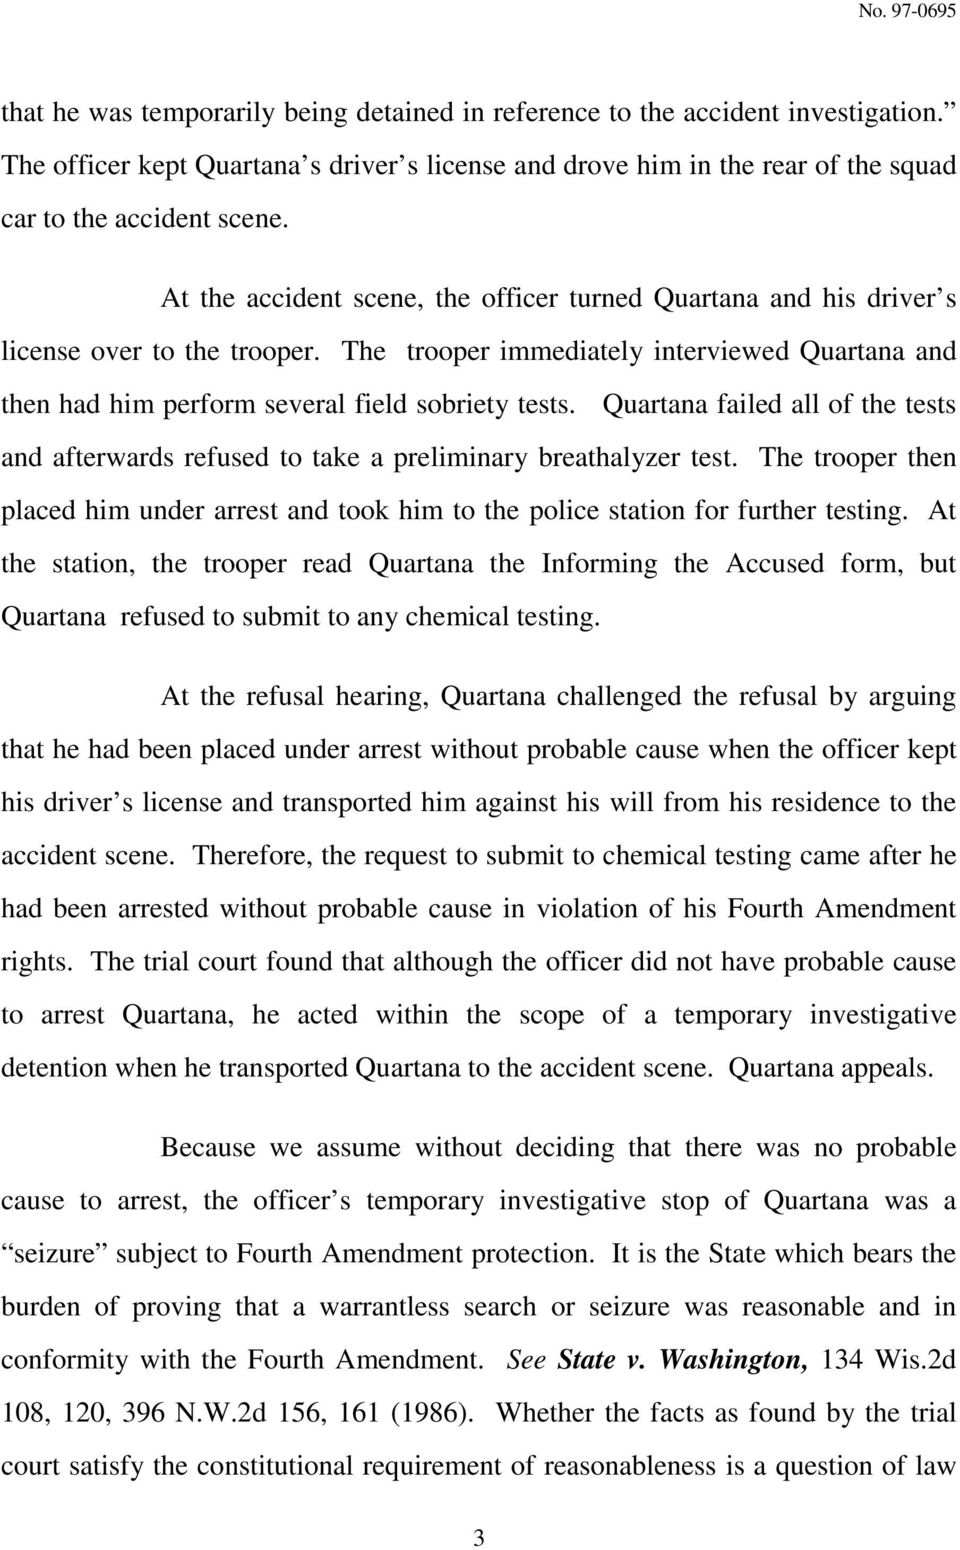 Quartana failed all of the tests and afterwards refused to take a preliminary breathalyzer test. The trooper then placed him under arrest and took him to the police station for further testing.